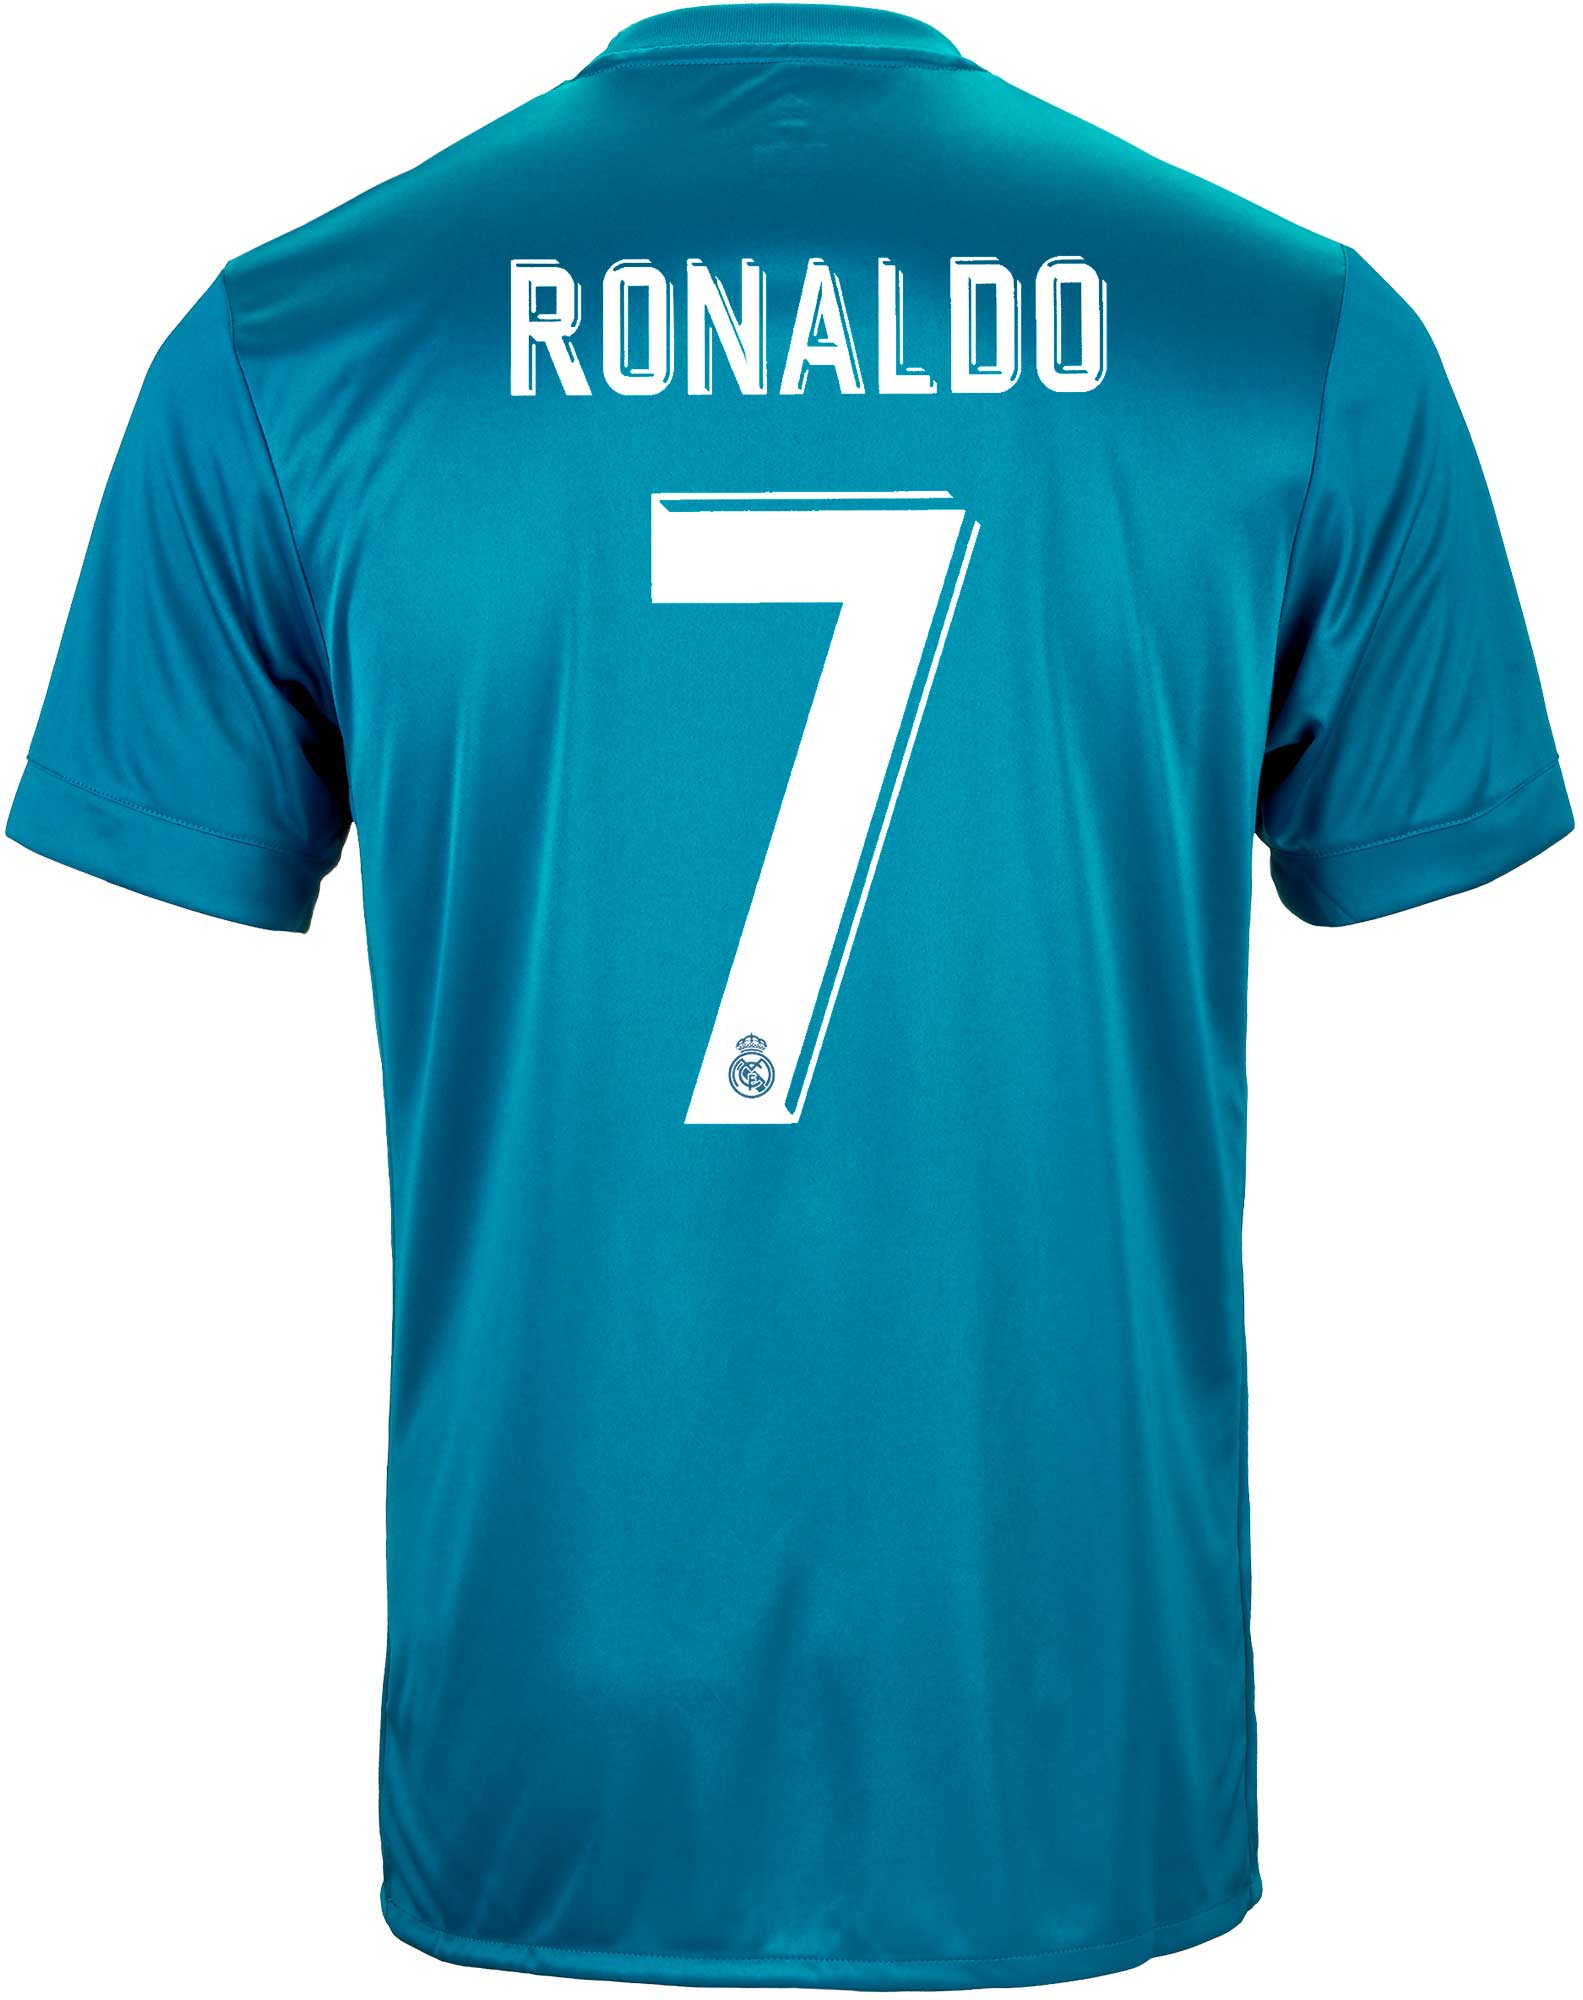 save off 0427a 61cee adidas Kids Cristiano Ronaldo Real Madrid 3rd Jersey 2017-18